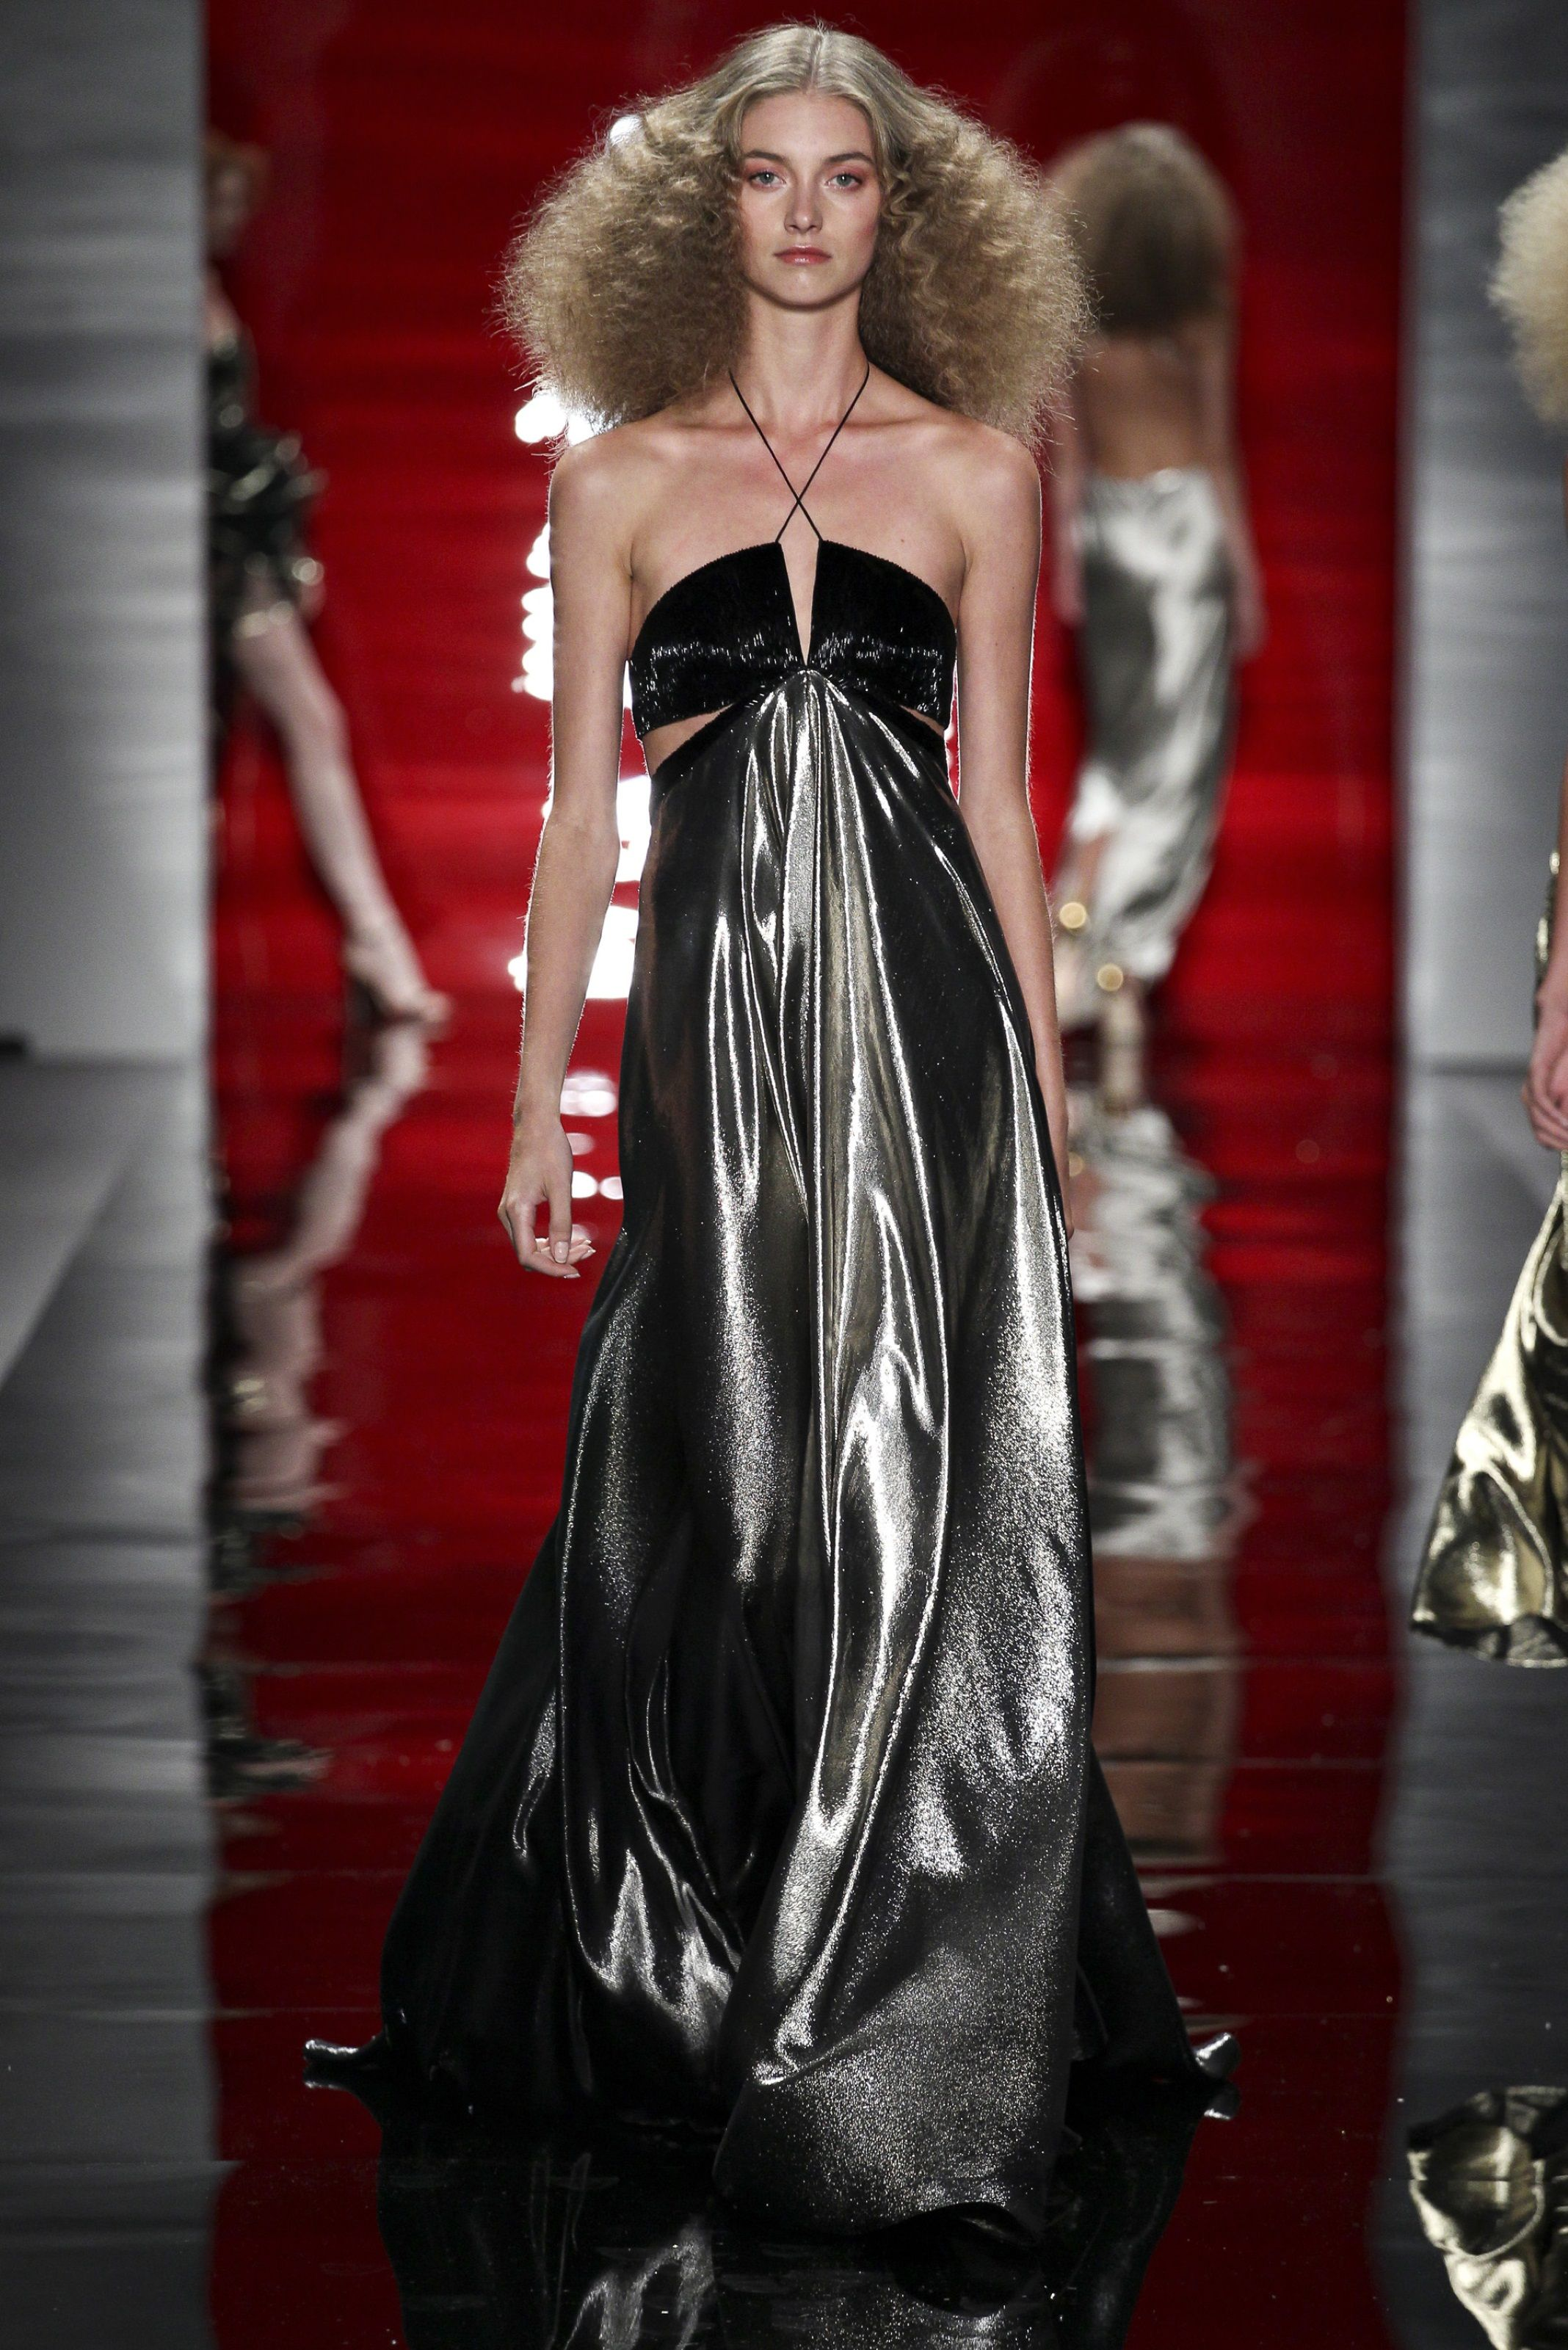 Sfilata Reem Acra New York -  Collezioni Primavera Estate 2014 - #Vogue #ss2014 #nyfw #ReemAcra